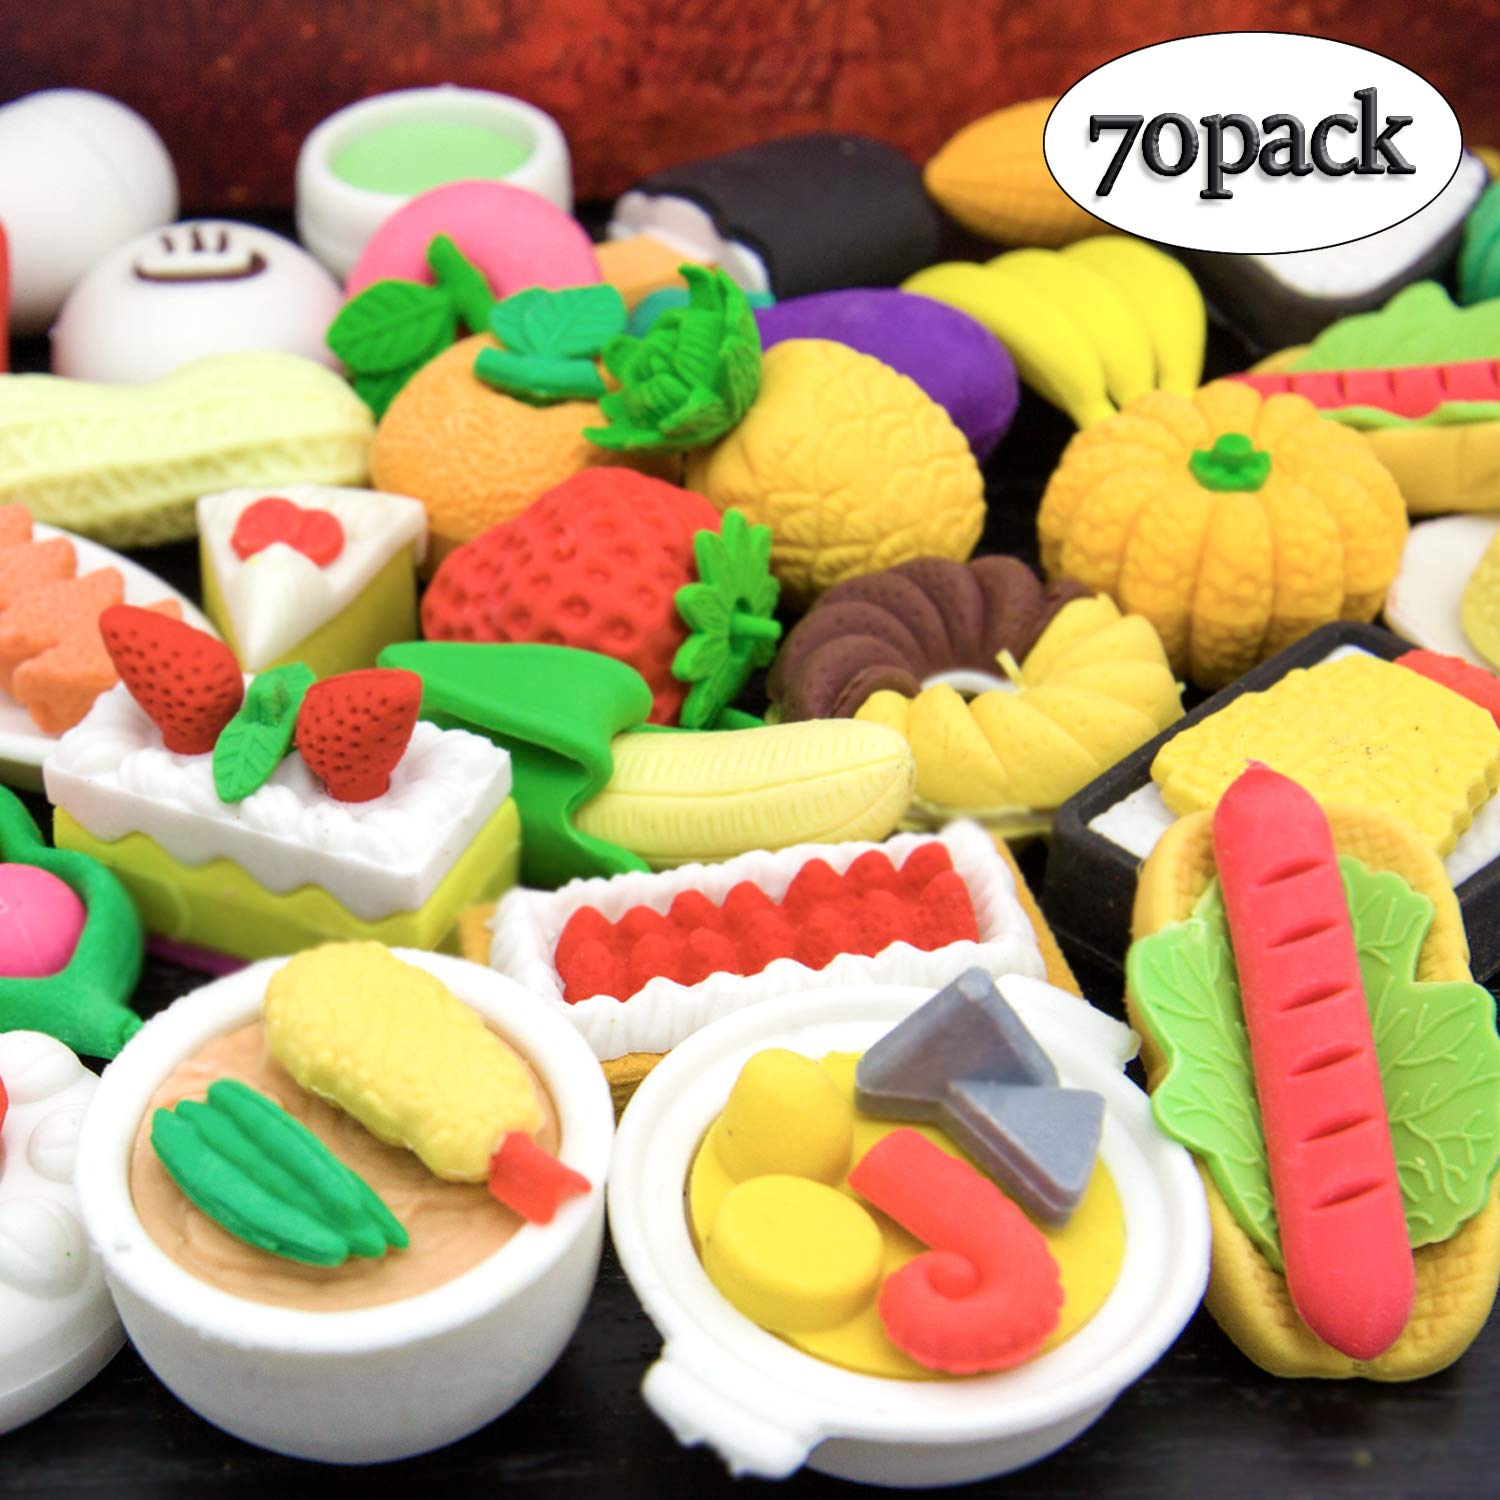 LanMa 70PCS Food Erasers for Kids Fruit Desserts Cake Puzzle Cute Erasers Set for School Classroom Prizes Party Gifts by LanMa